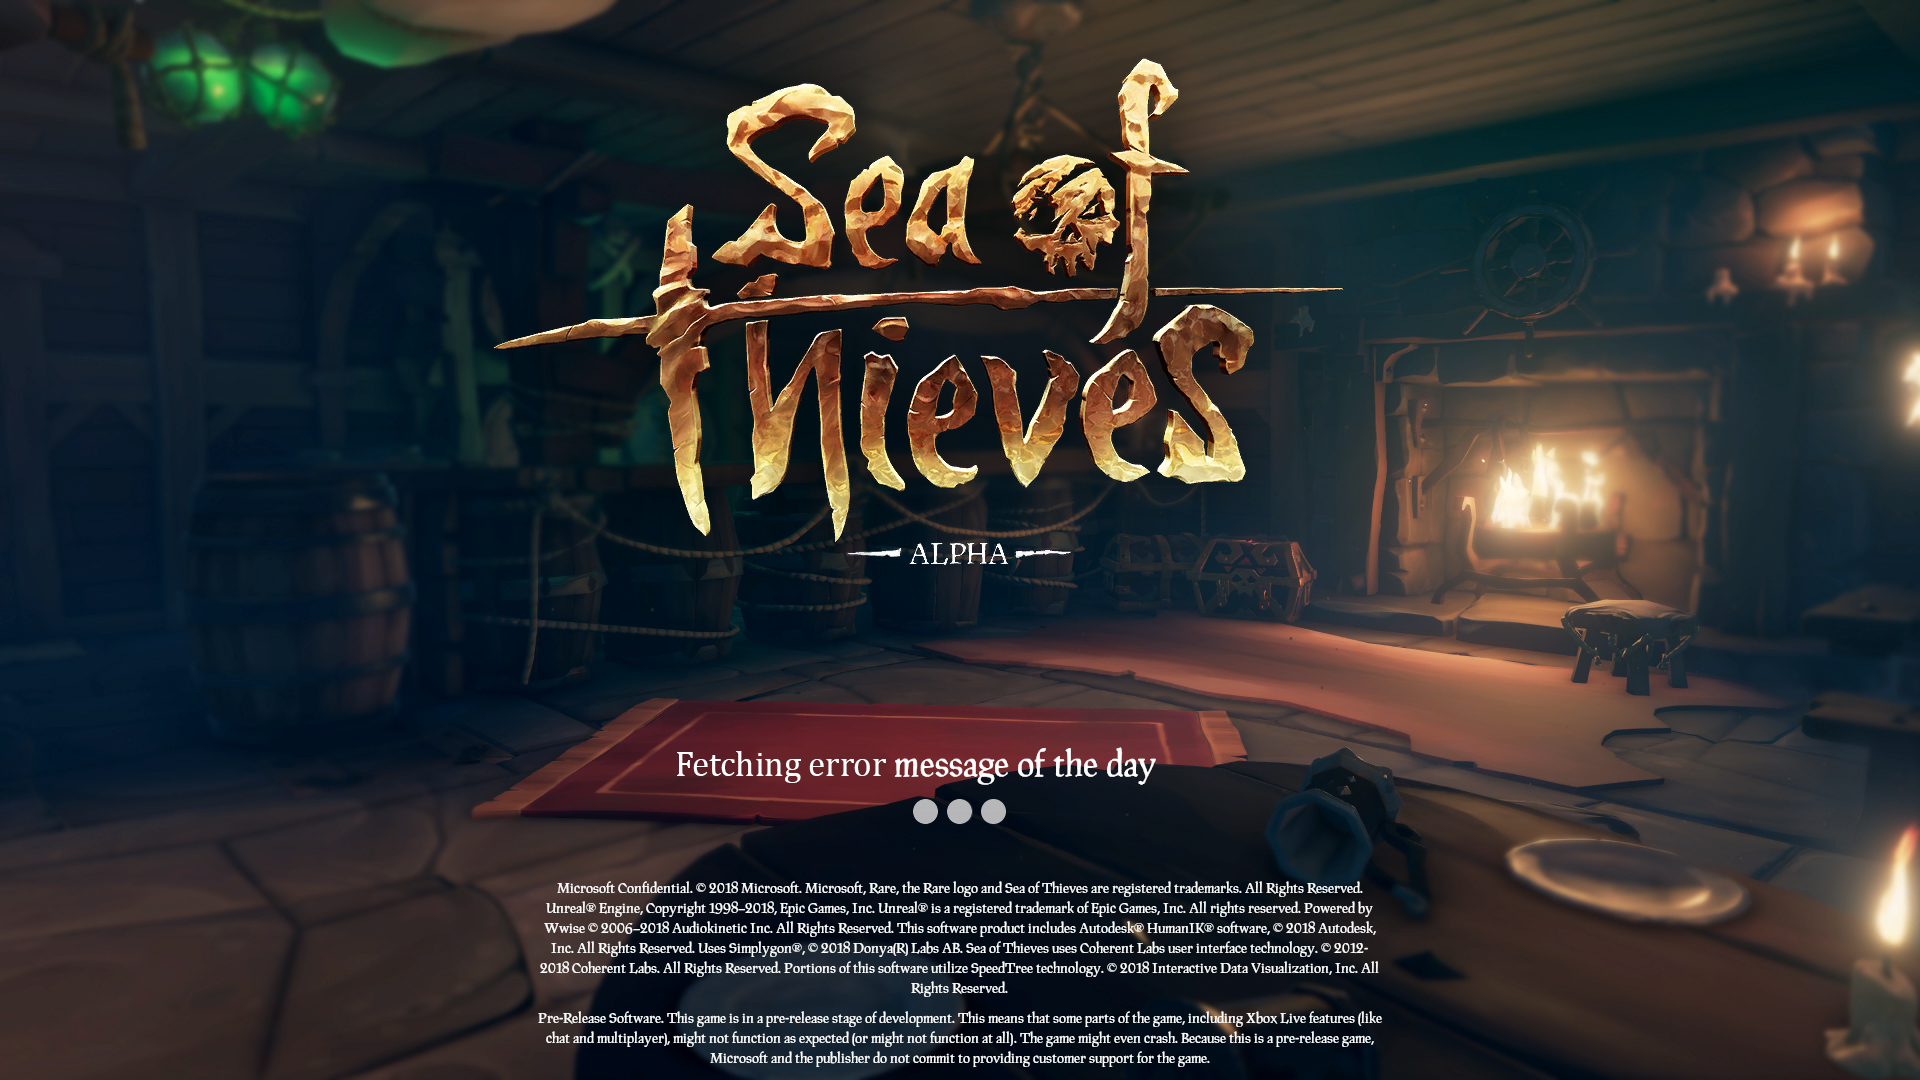 Sea Of Thieves → Sea of Thieves pc écran partagé